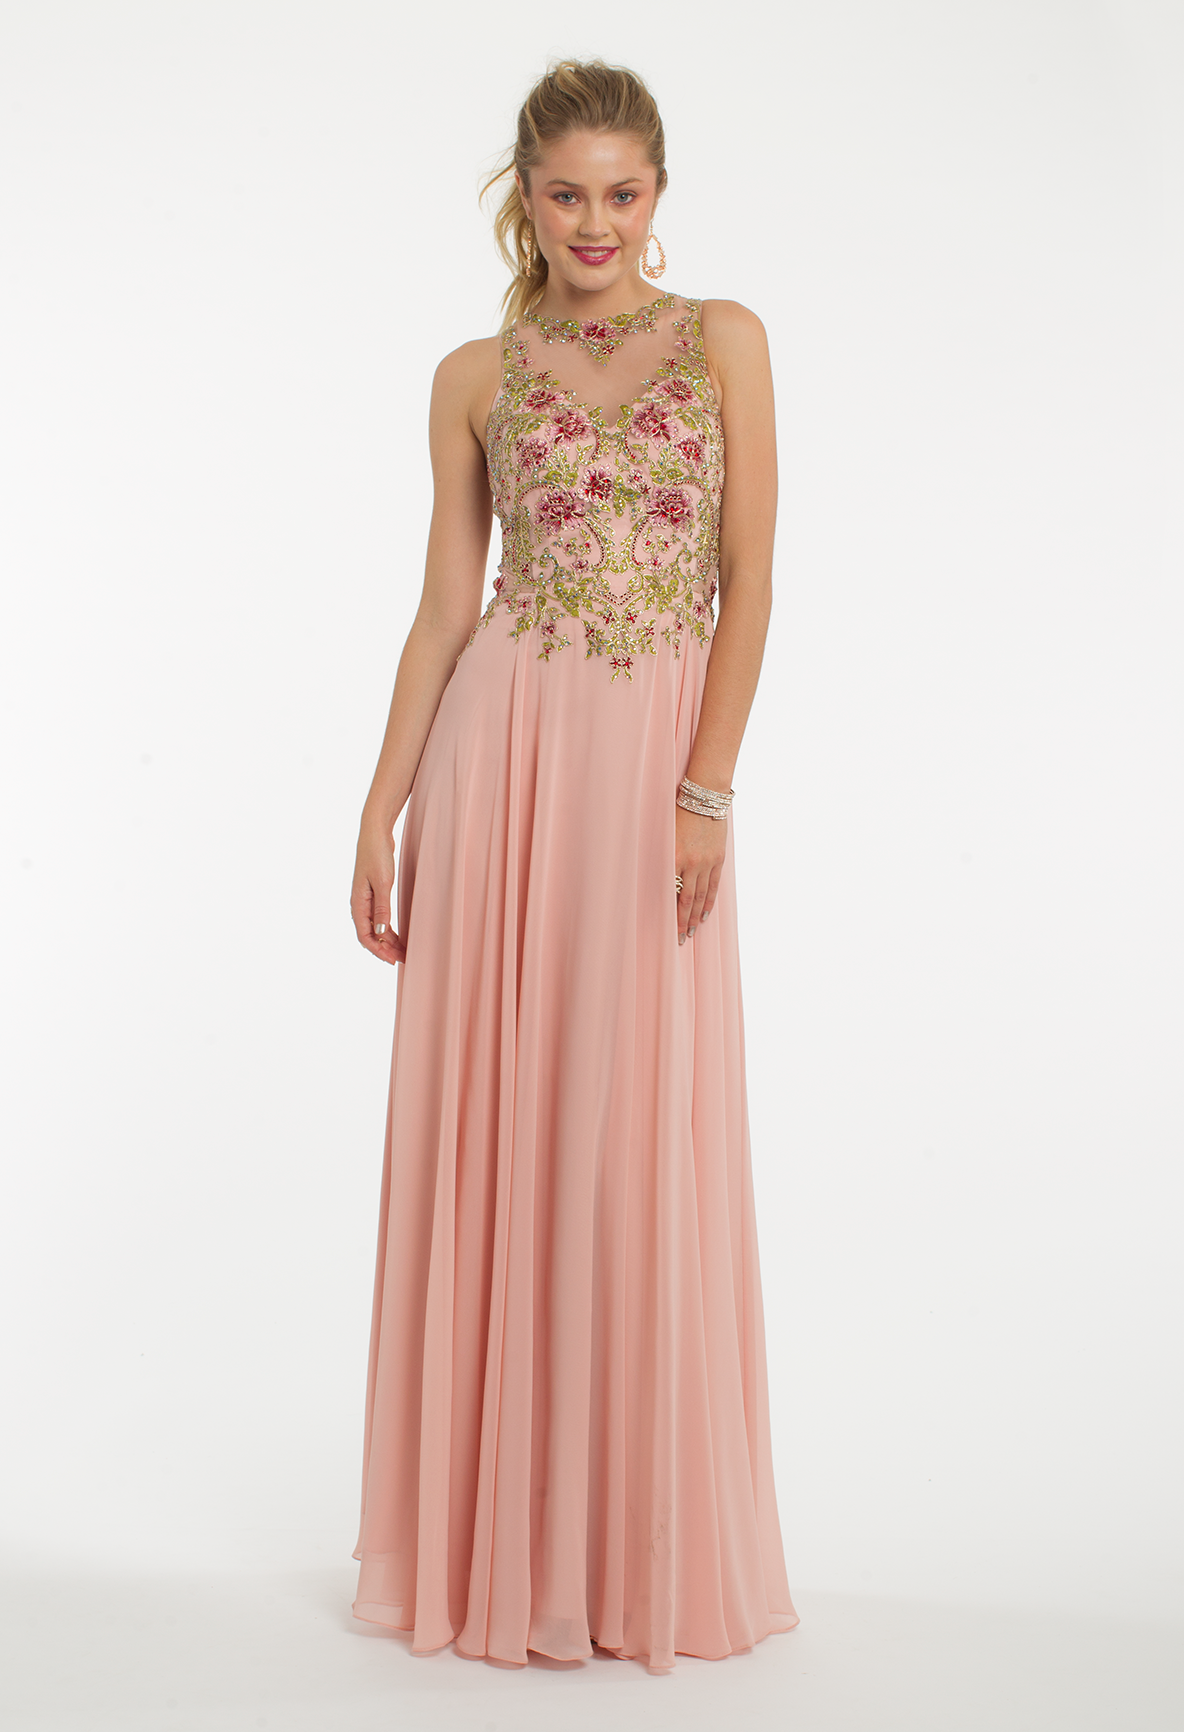 This evening gown is perfect for a gardenthemed prom with its